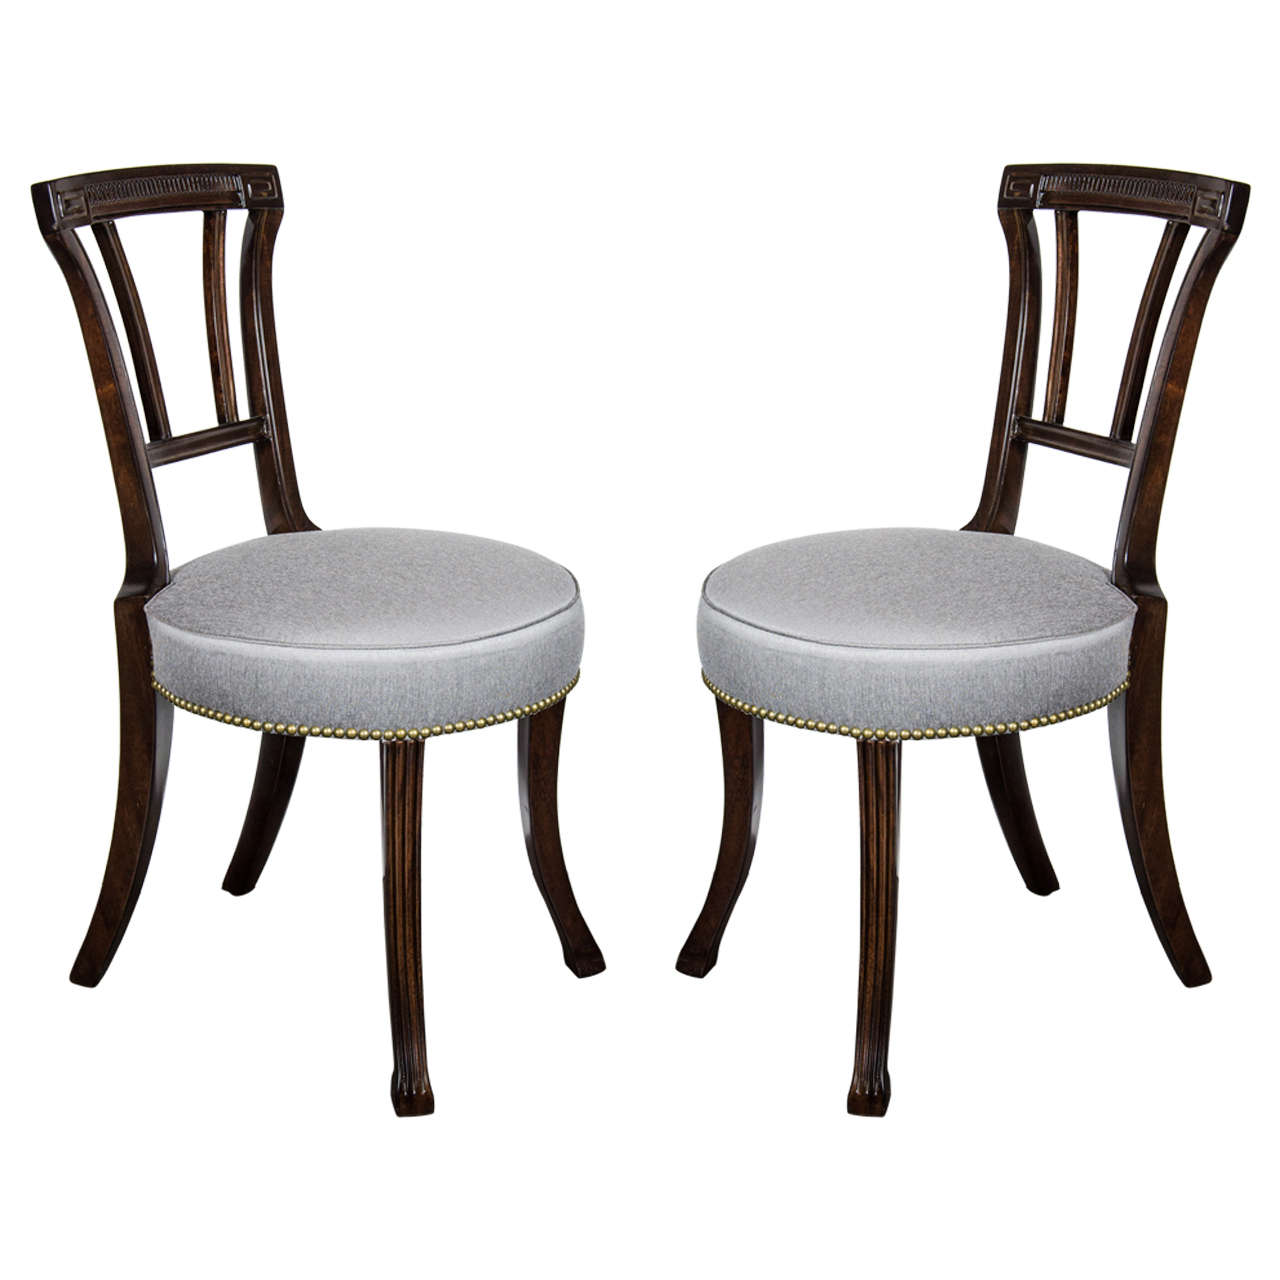 Pair of 1940s Hollywood Greek Key Occasional Chairs by Grosfeld House